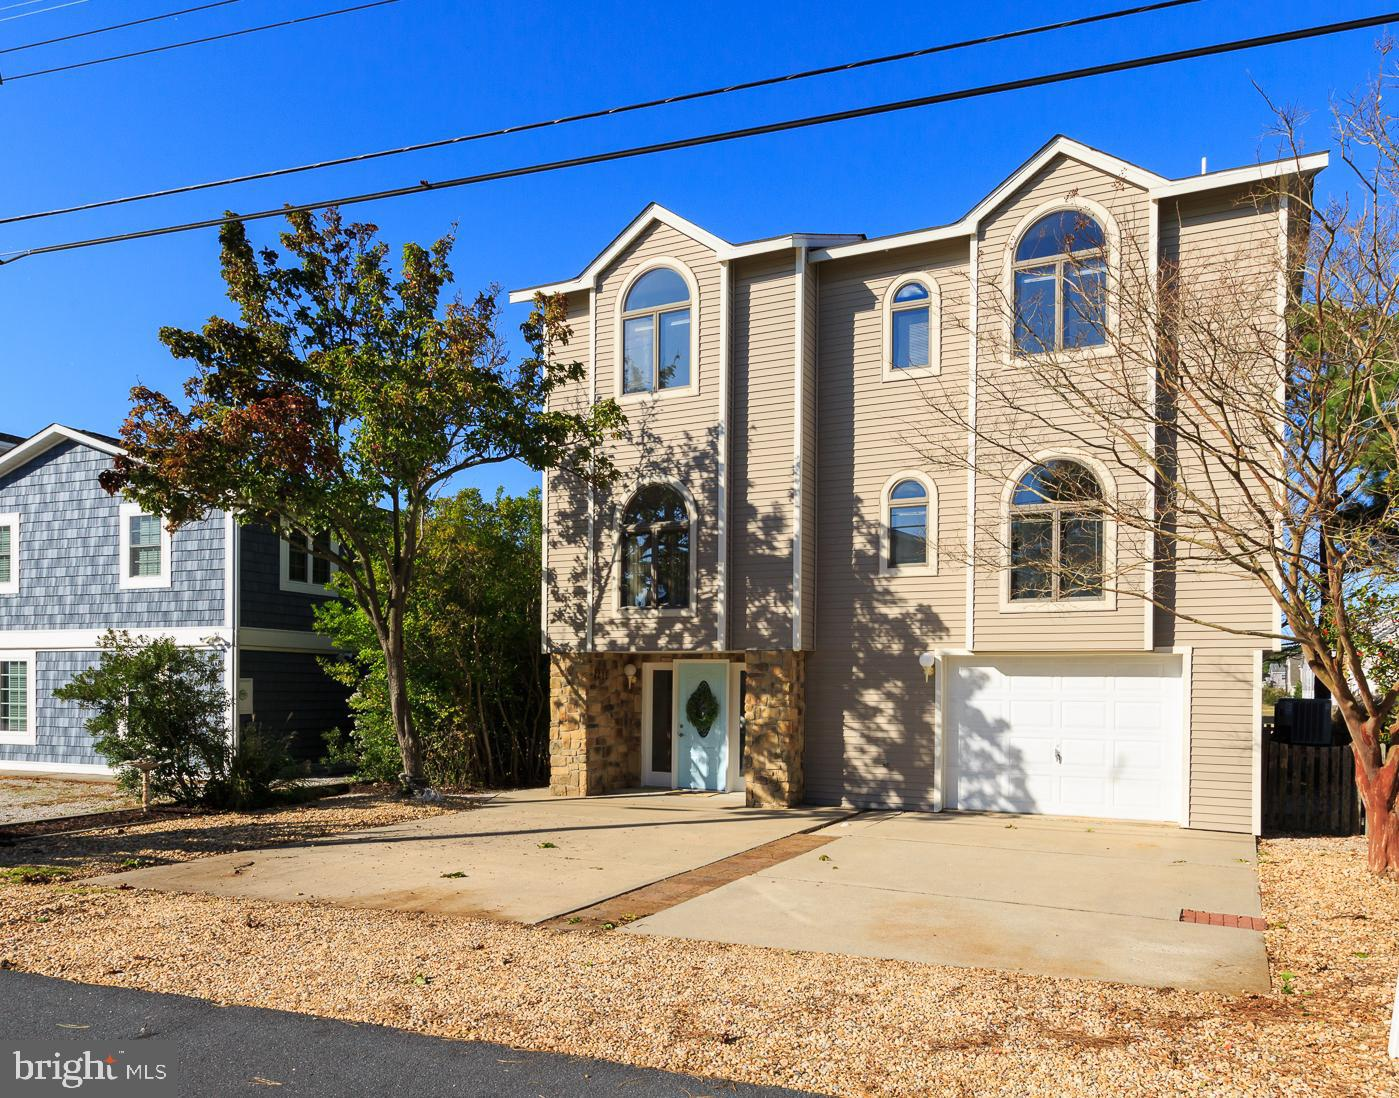 DESU144414-302144961426-2019-11-04-10-46-06 211 Bayshore Dr | South Bethany, De Real Estate For Sale | MLS# Desu144414  - Suzanne Macnab